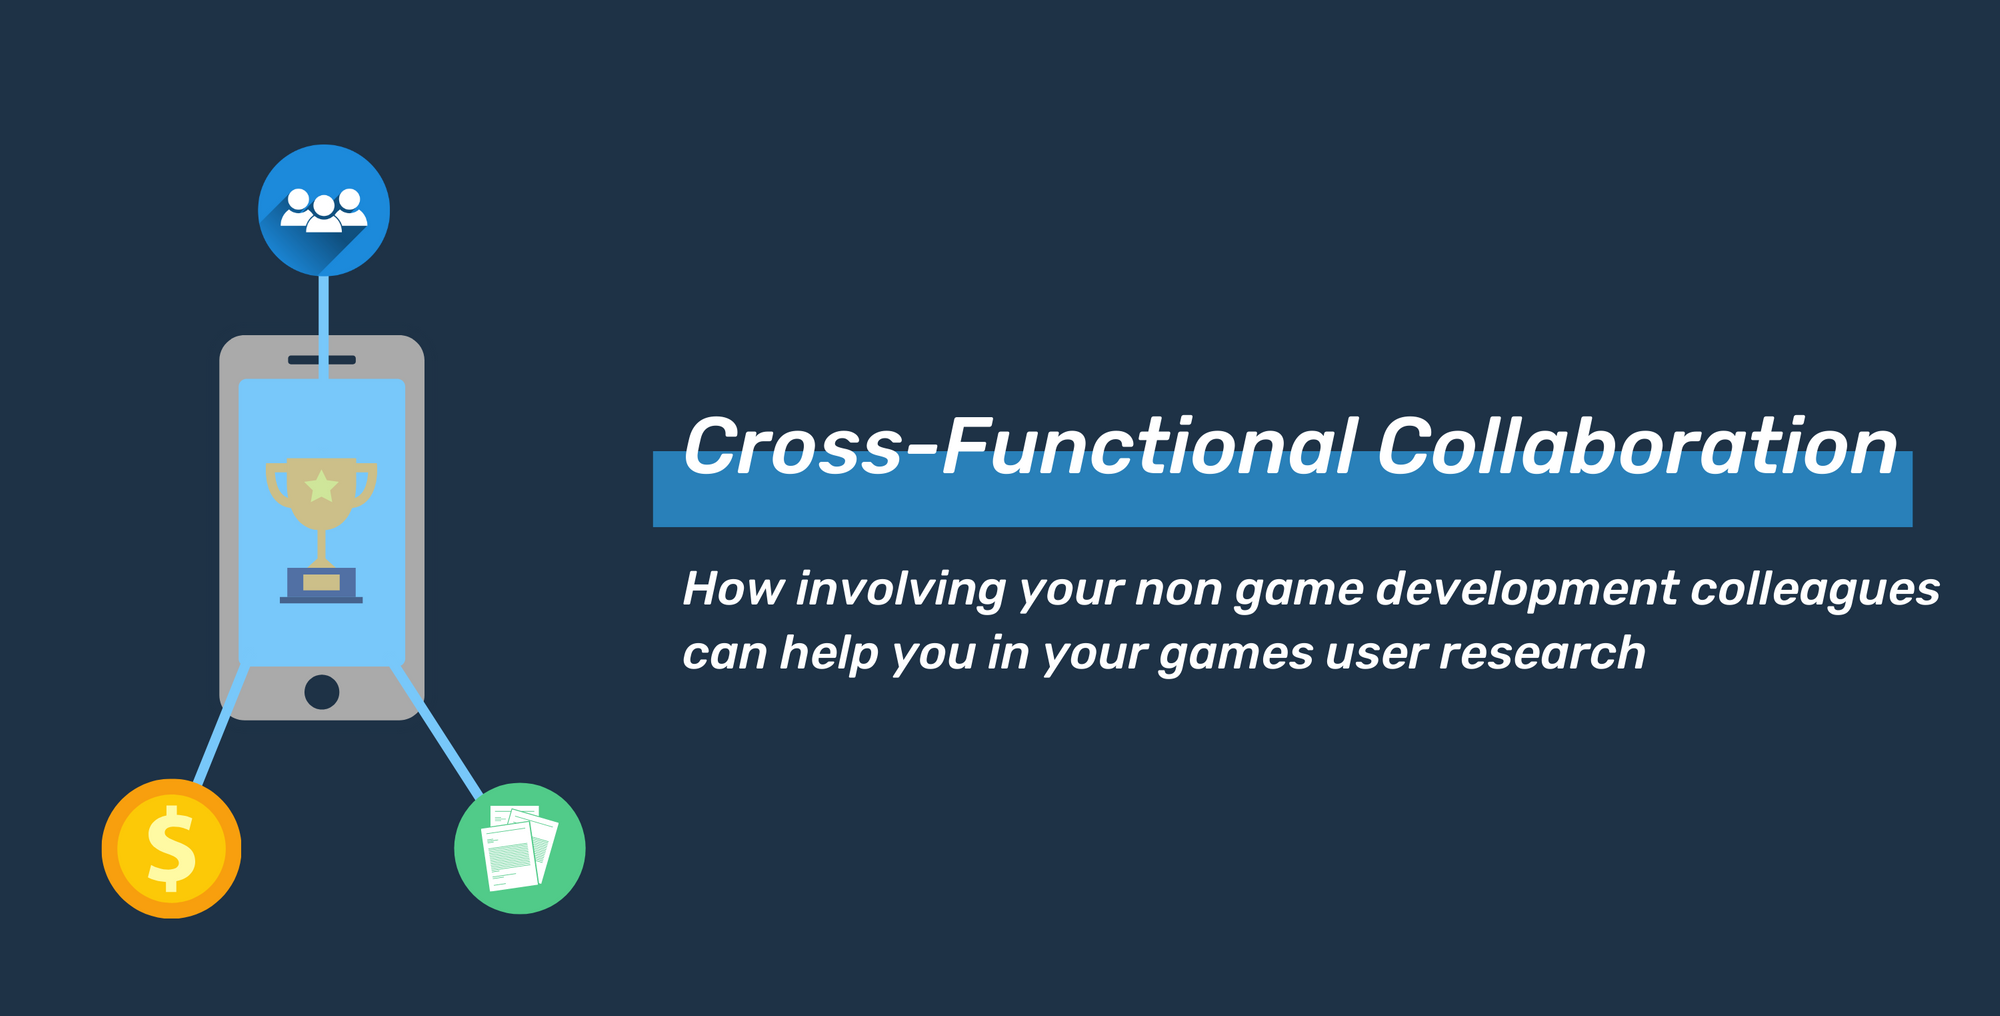 Cross-Functional Collaboration in Games User Research